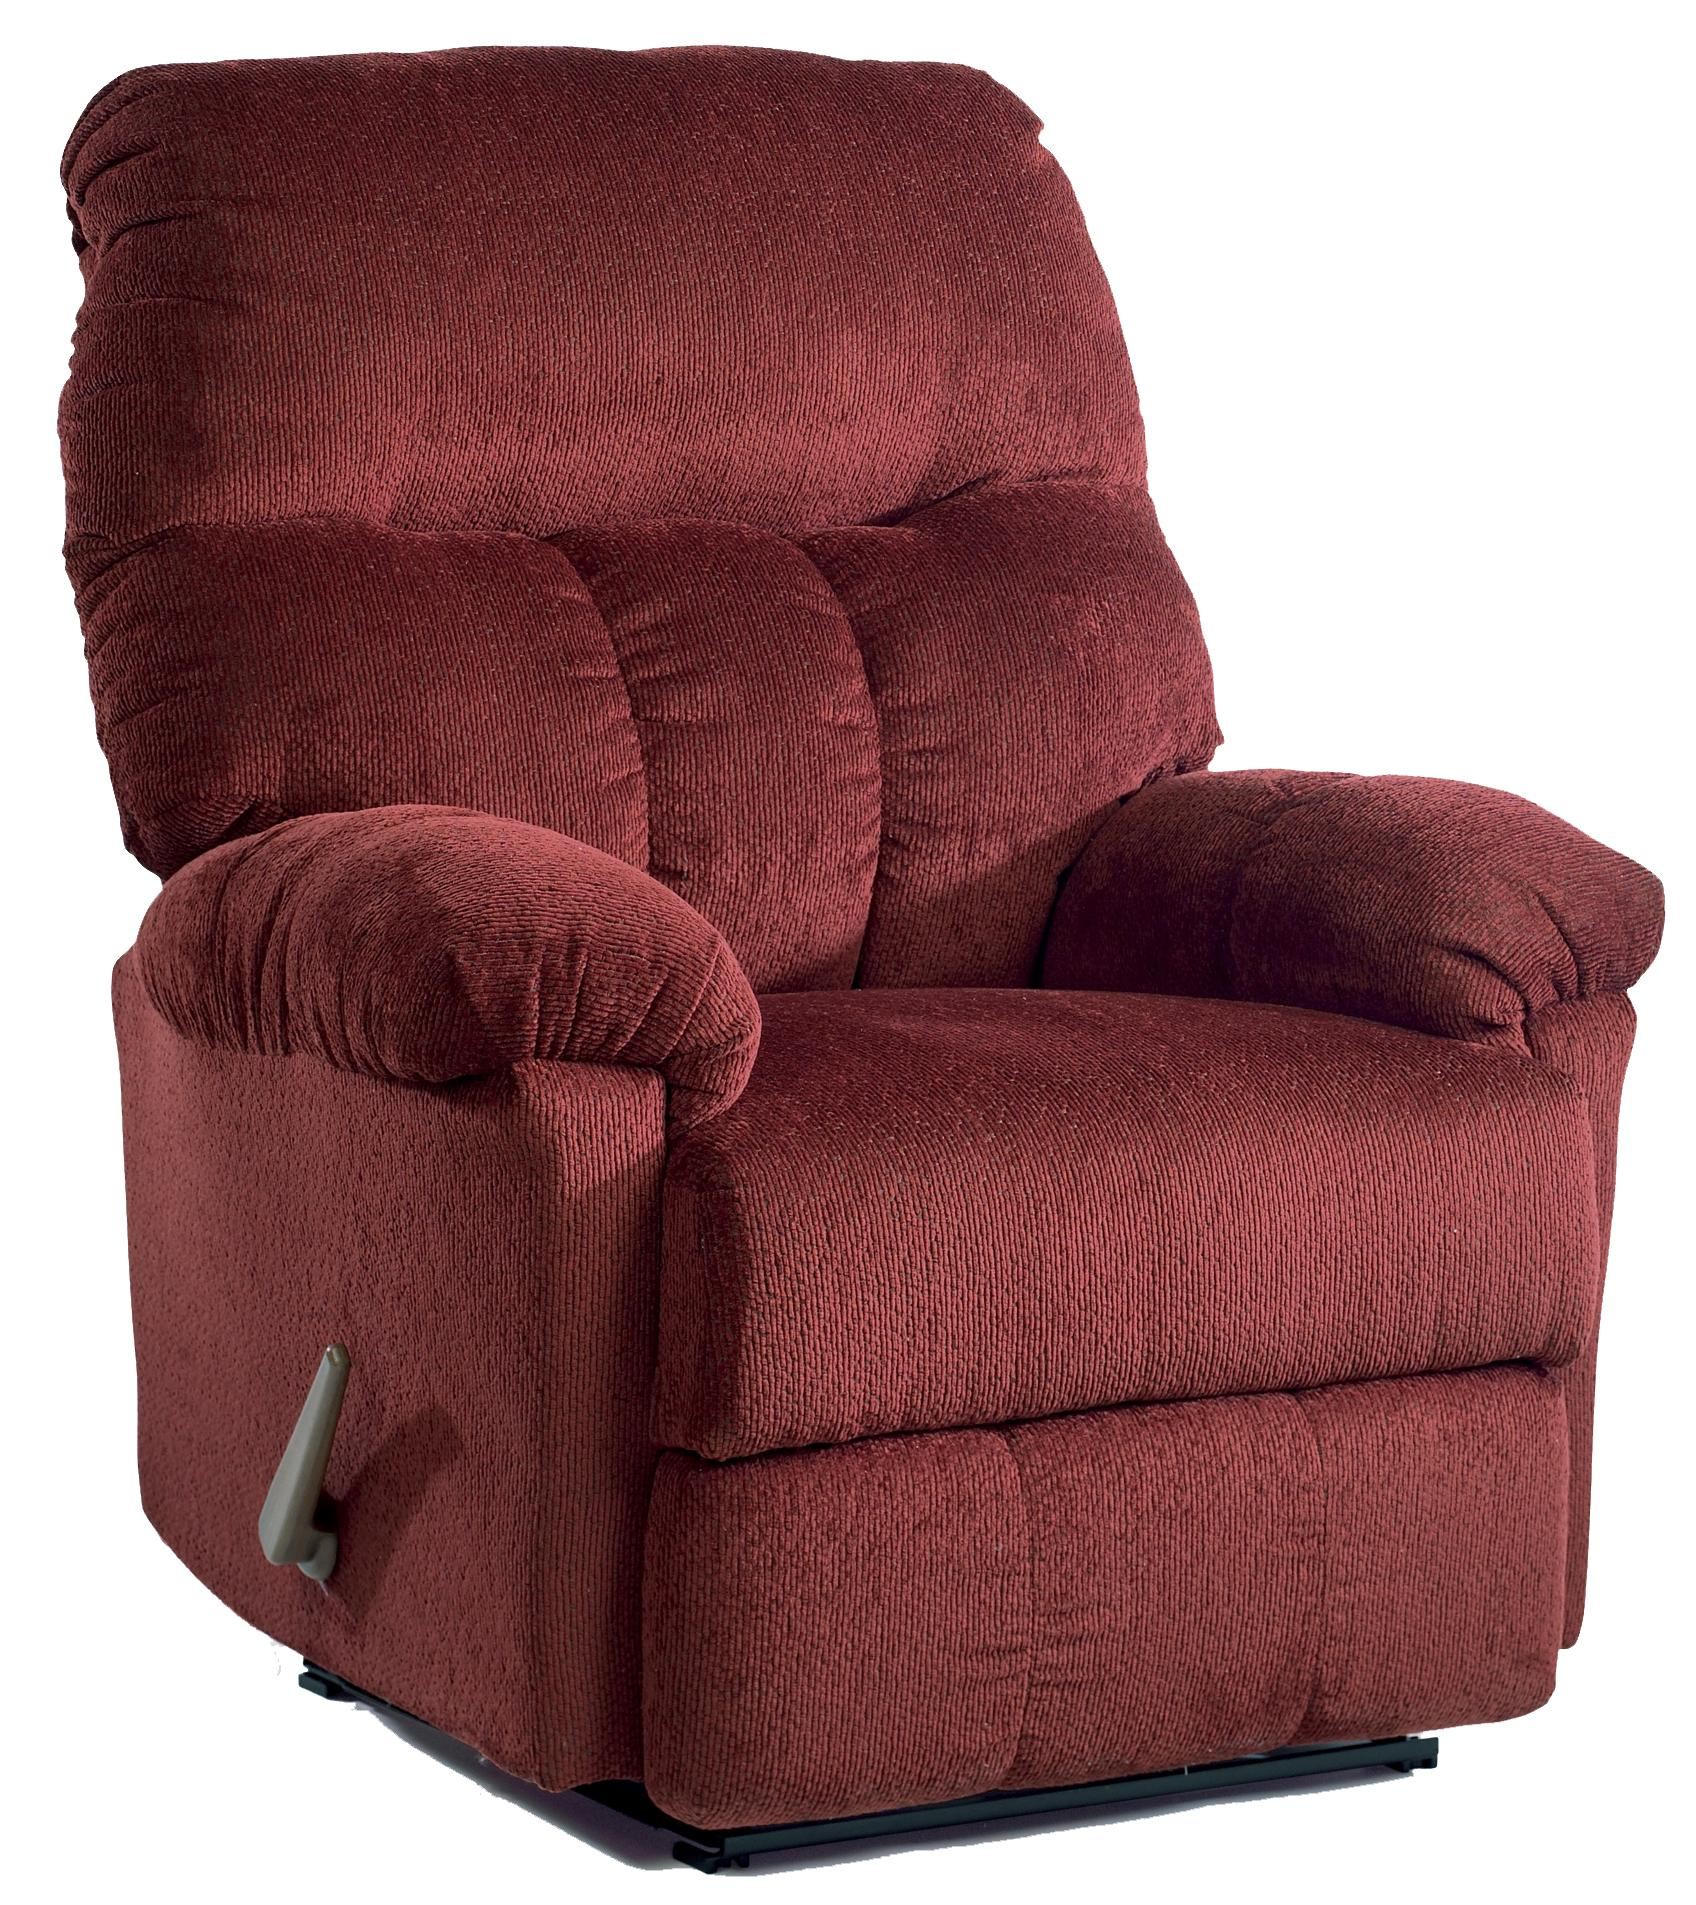 Best Home Furnishings Ares Ares Swivel Glider Recliner - Item Number: 2MW35